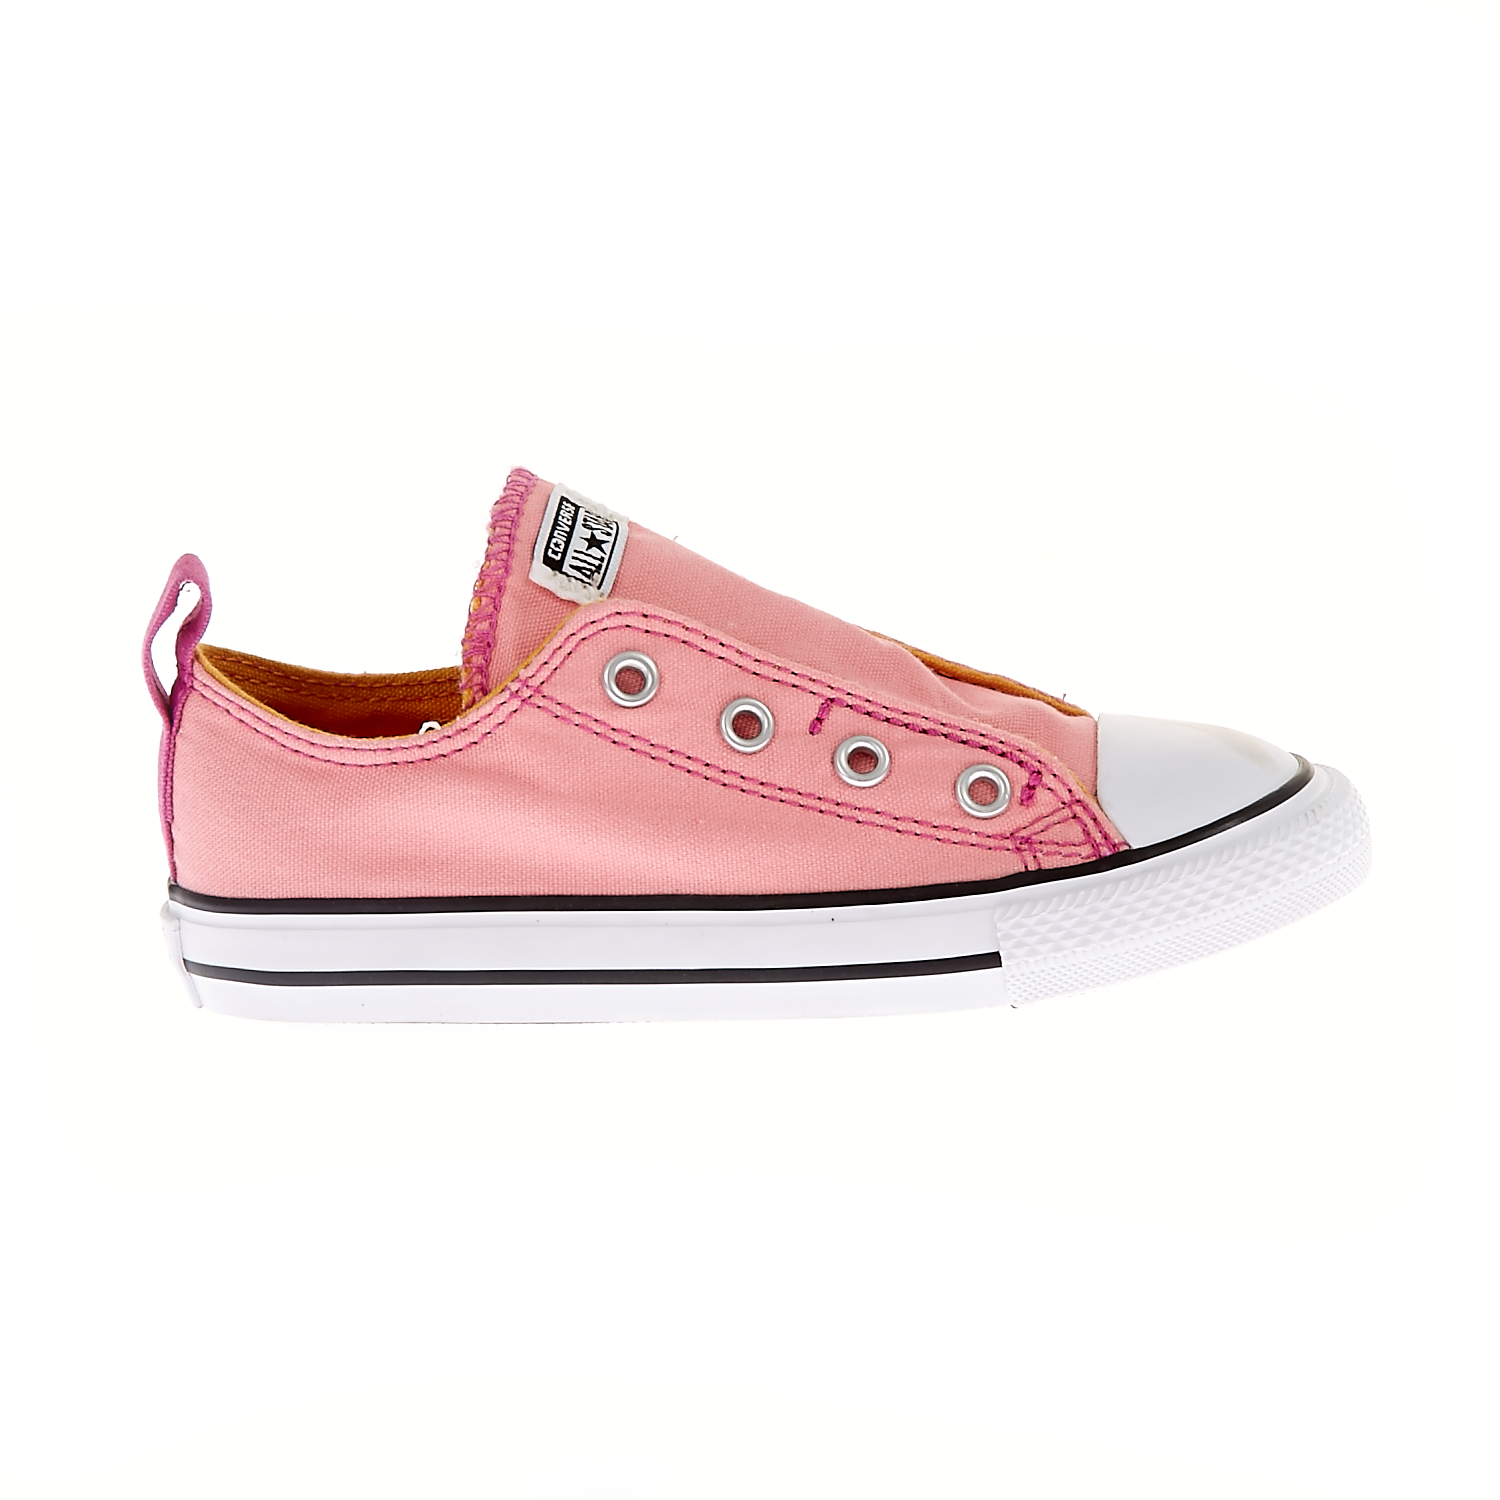 CONVERSE – Βρεφικά παπούστια Chuck Taylor All Star Simple S ροζ